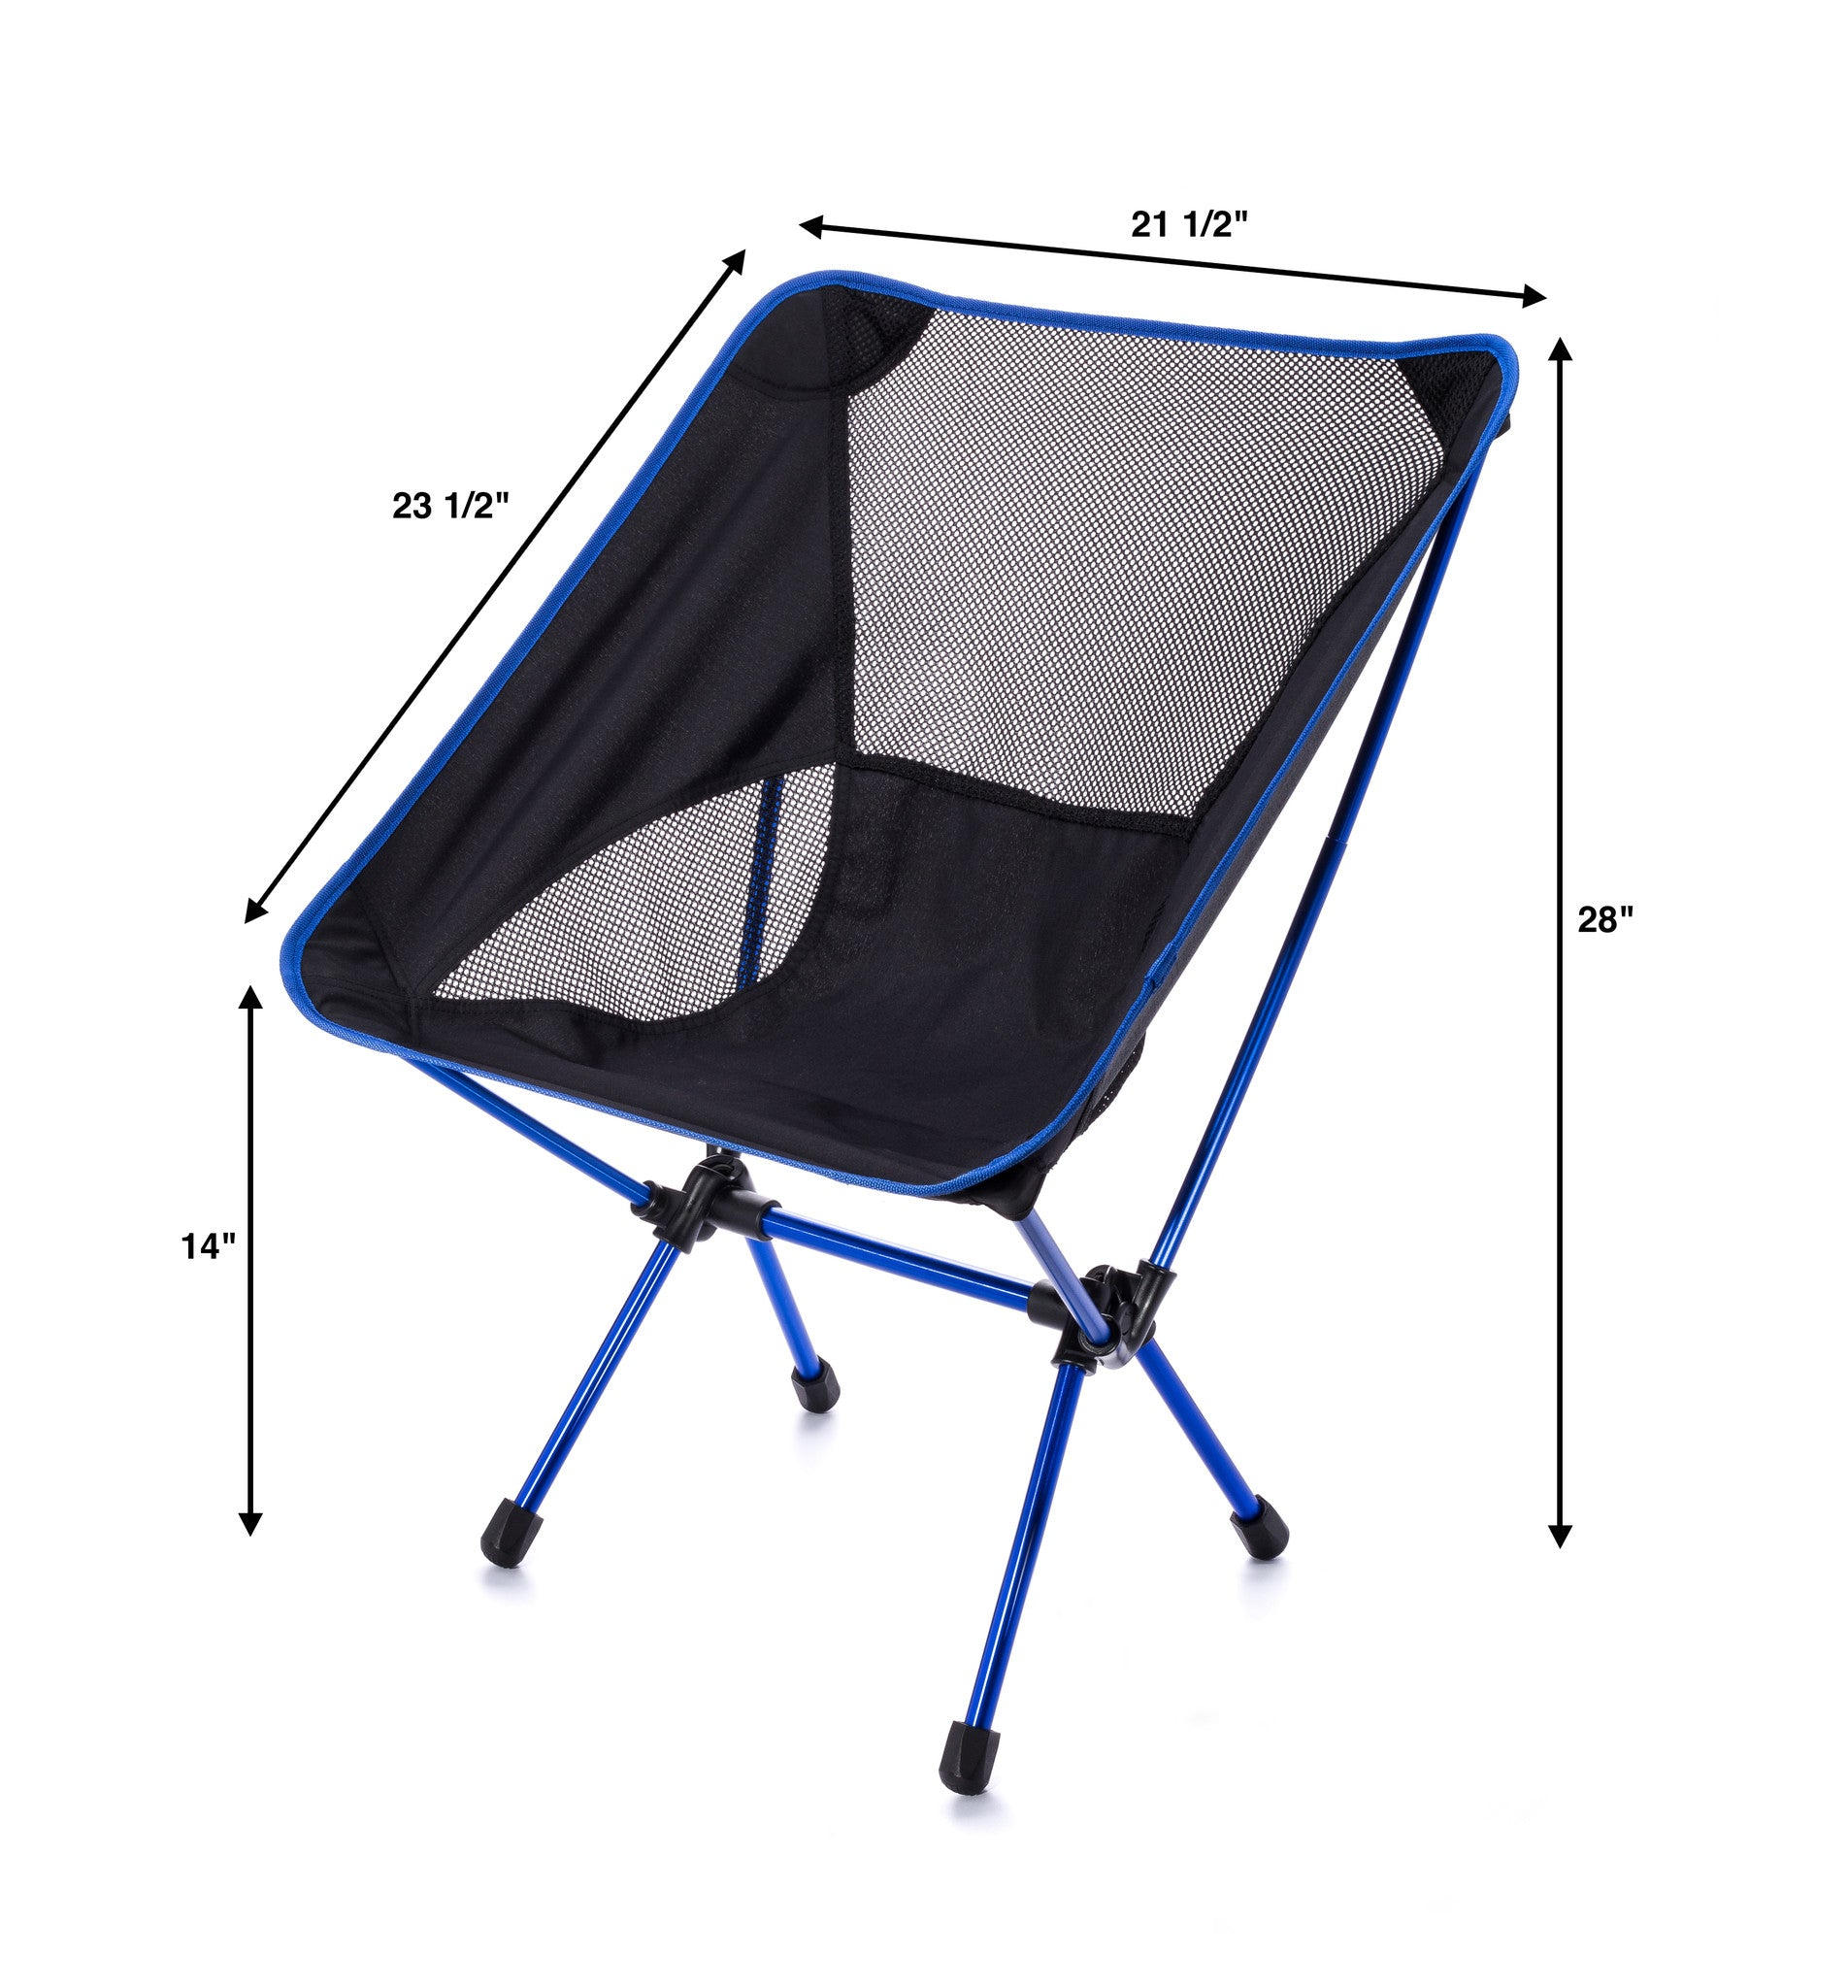 ... TrekUltra Portable Compact Lightweight C& Chair with Bag - Ultralight Folding C& Chairs - Great Beach ...  sc 1 st  Trek Ultra : foling chairs - Cheerinfomania.Com